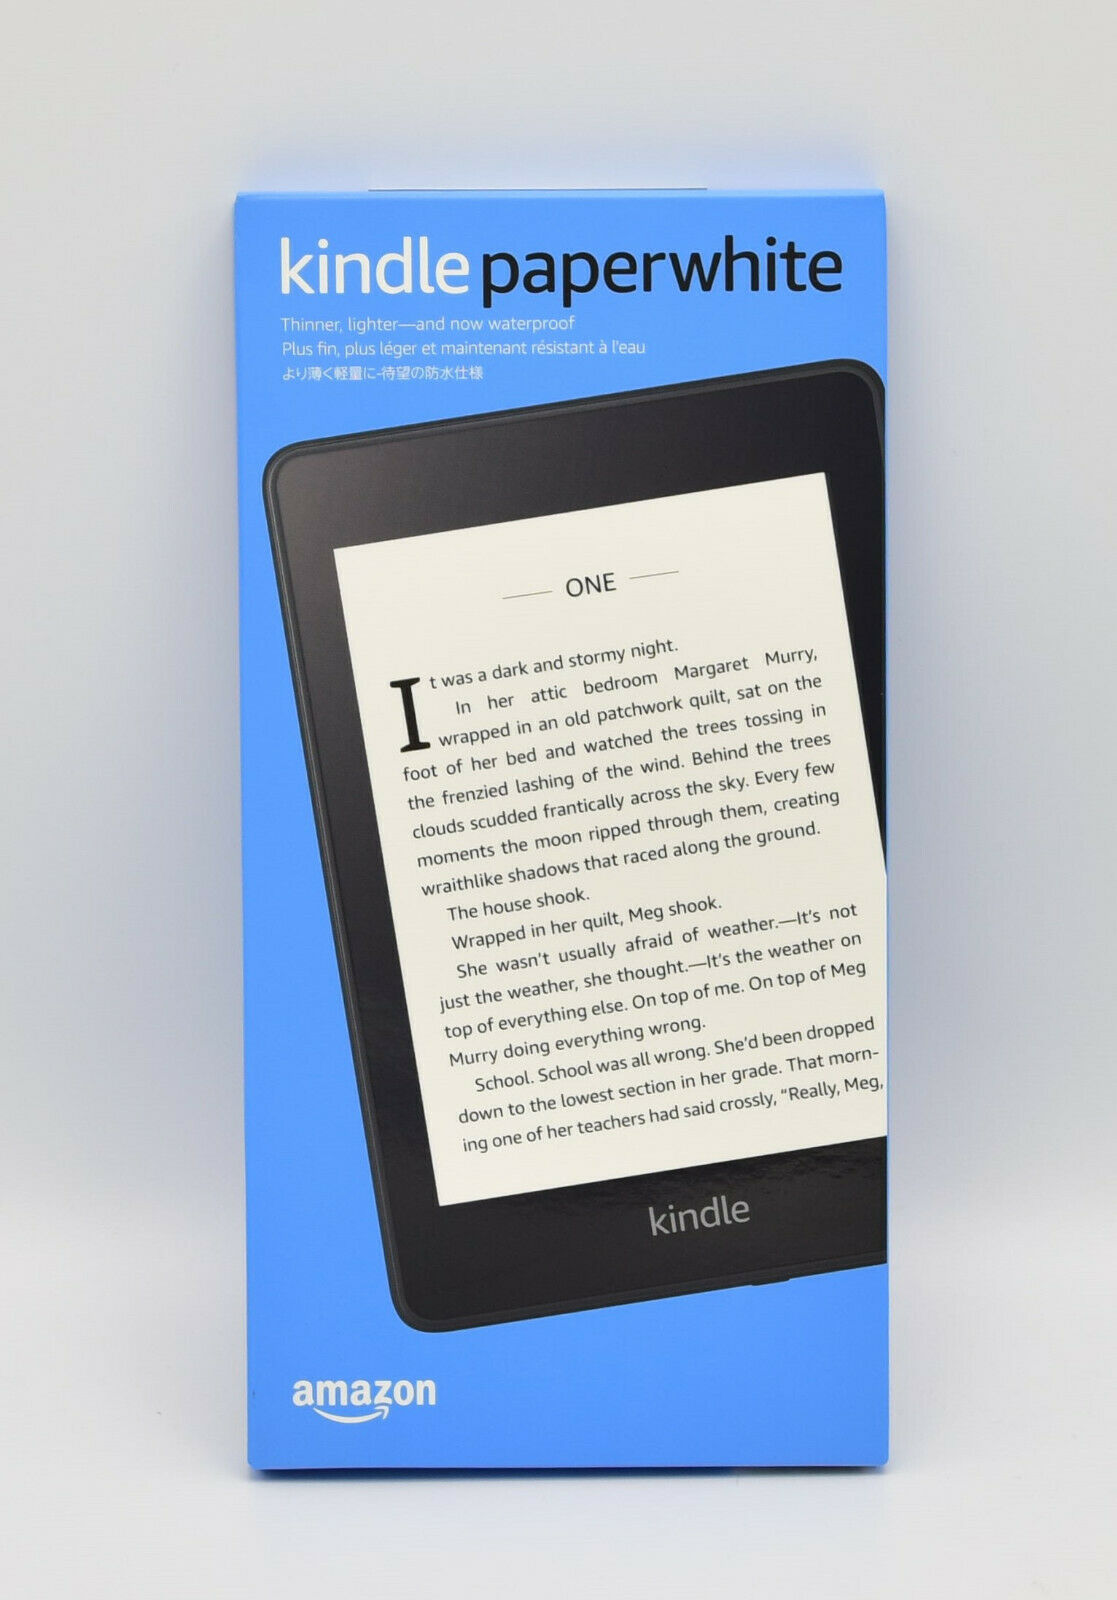 Amazon Kindle Paperwhite (10. Generation) 8GB, WLAN, mit Spezialangeboten, NEU